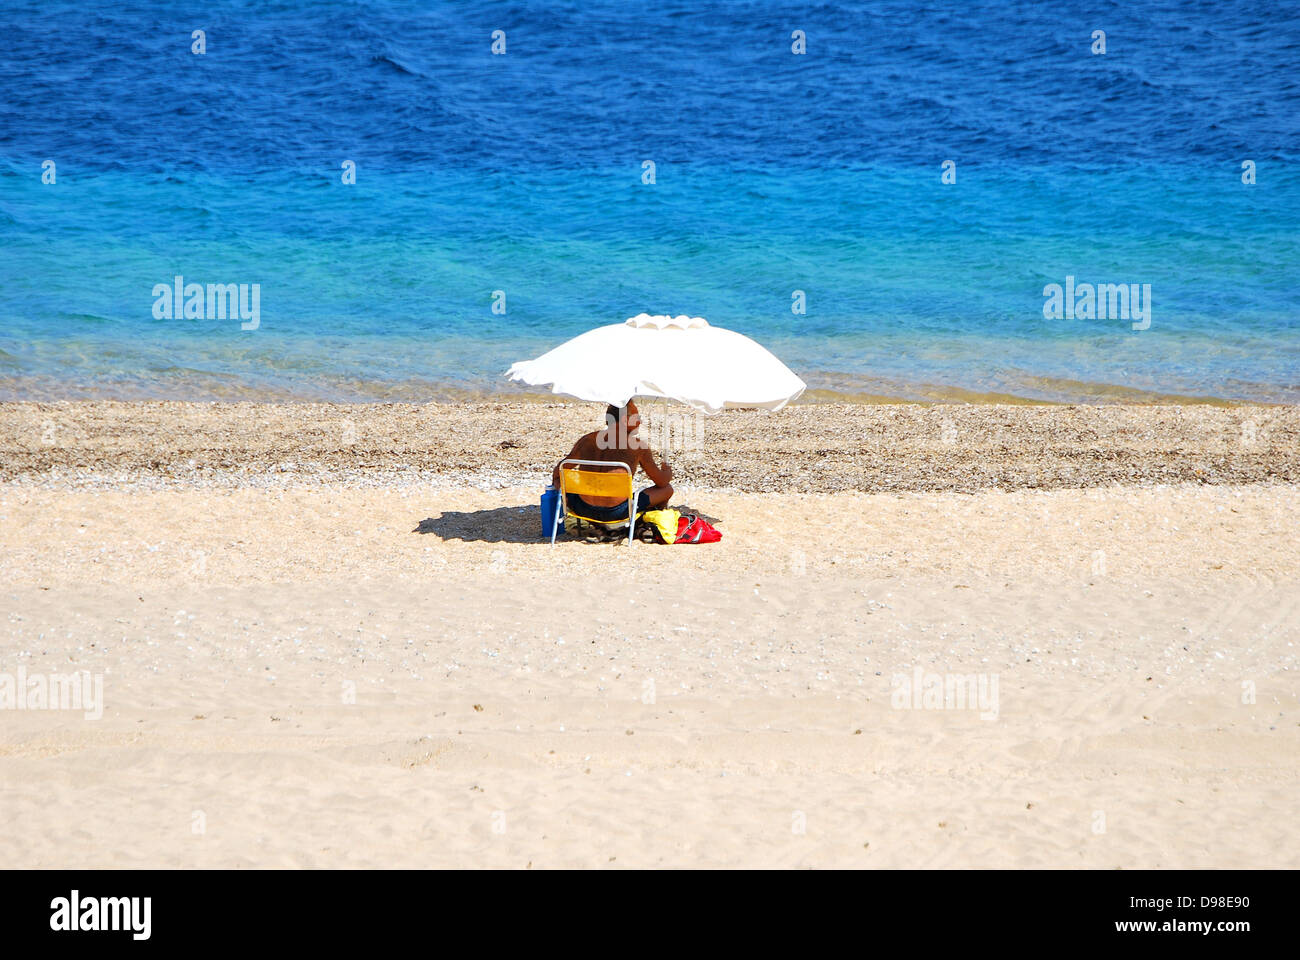 Deserted sandy beach with one solitary male sunbather sheltering under a parasol with turquoise blue sea in the - Stock Image